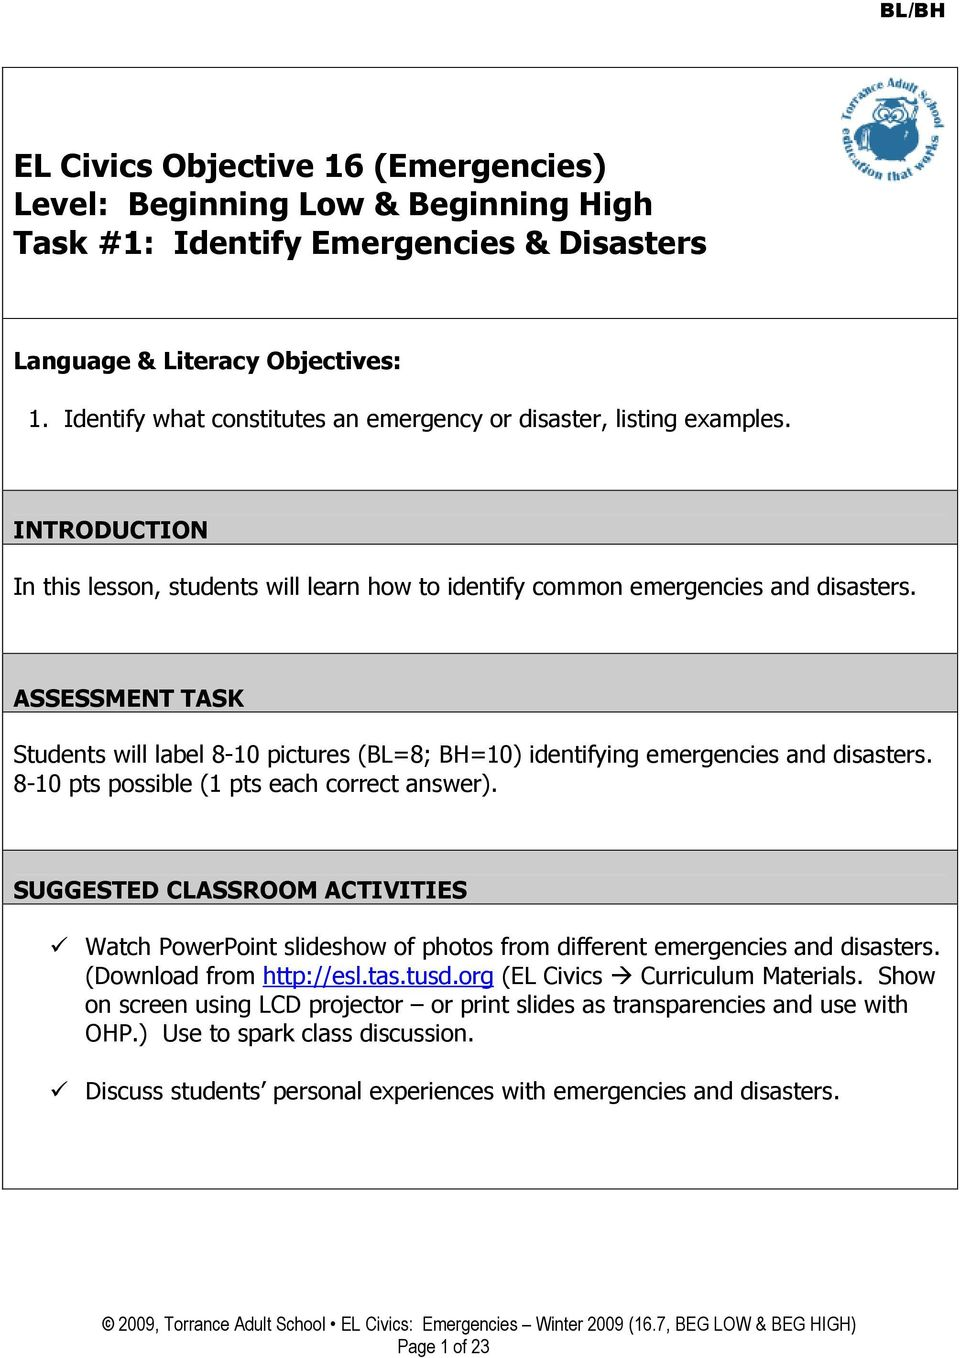 ASSESSMENT TASK Students will label 8-10 pictures (BL=8; BH=10) identifying emergencies and disasters. 8-10 pts possible (1 pts each correct answer).